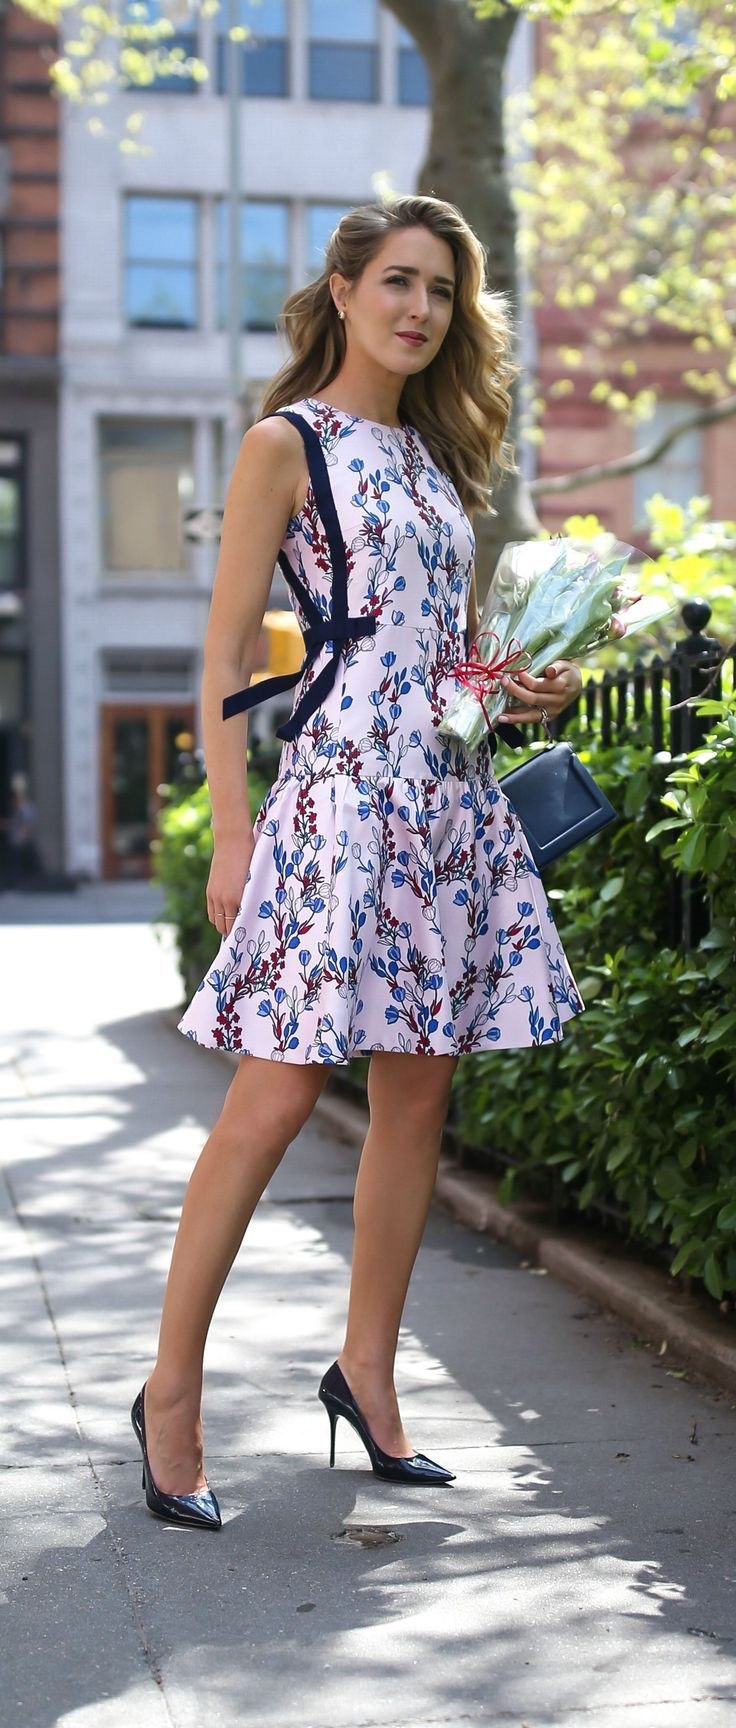 blush pink floral drop-waist dress with navy grosgrain ribbon side bow details and classic patent pointed toe navy pumps // 30 Dresses in 30 Days // Draper James, Jimmy Choo, Phillip Lim